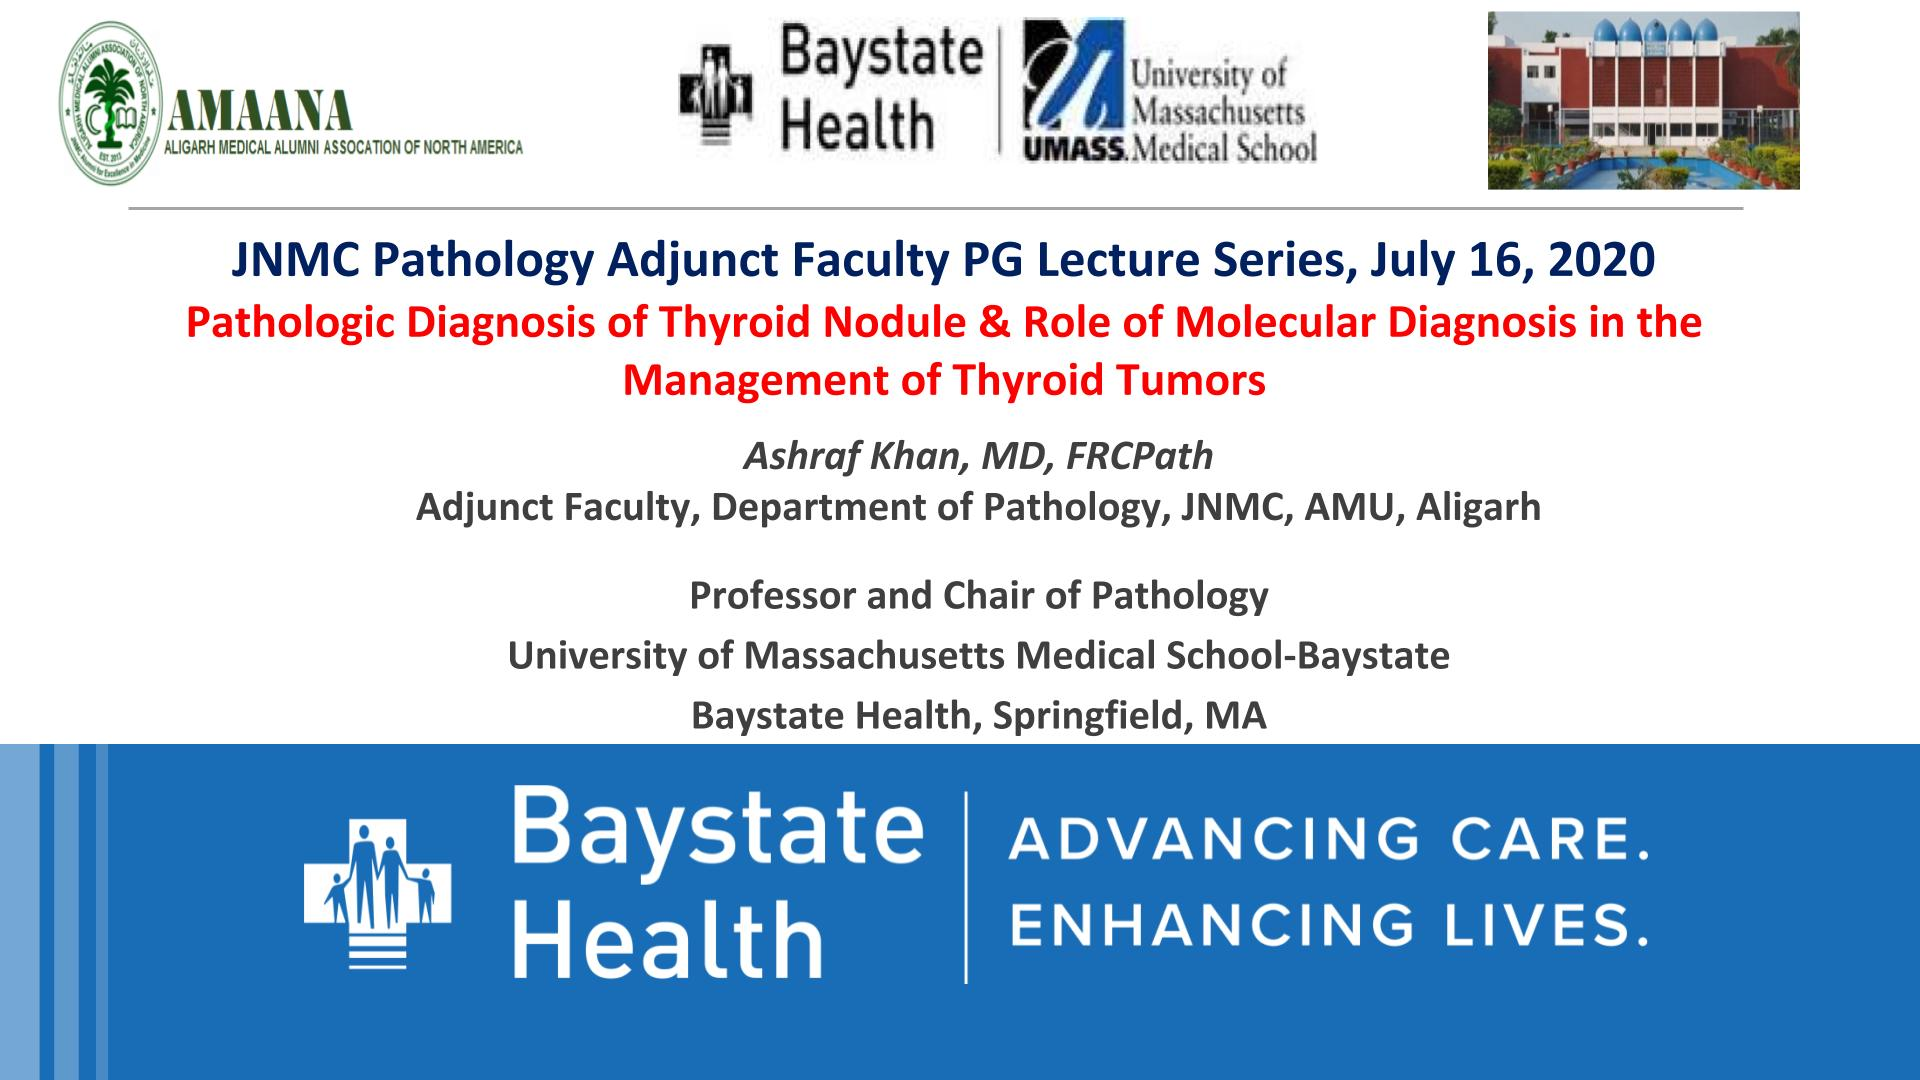 JNMC Pathology Adjunct Faculty PG Lecture Series 2020